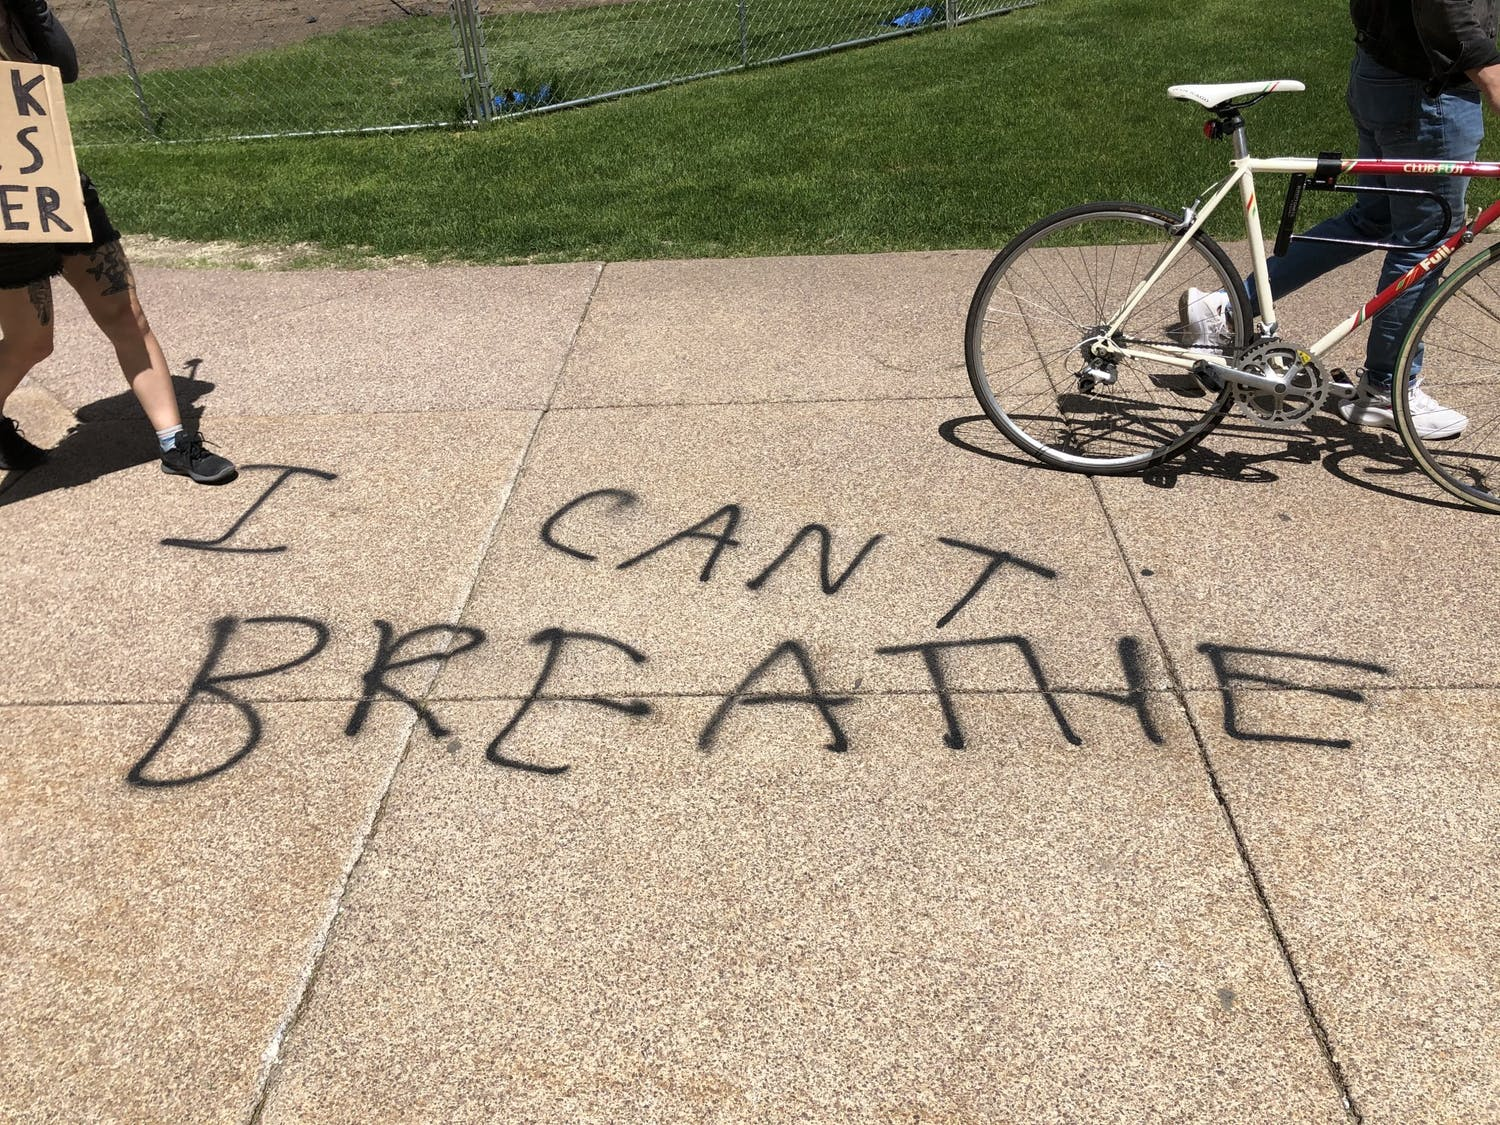 """I can't breathe"" spray-painted on the ground near the Capitol. 12:29 p.m."